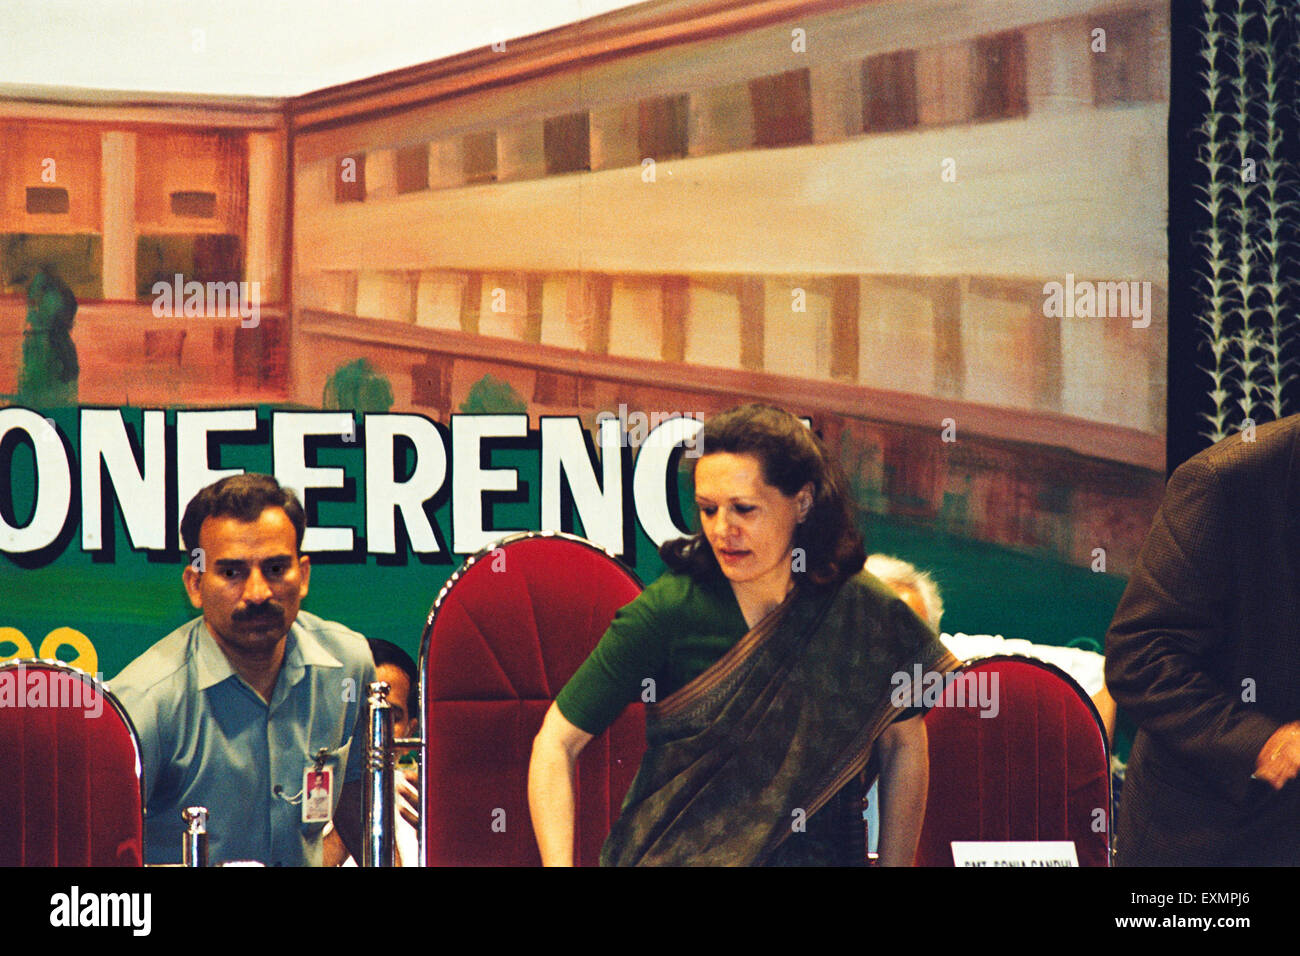 Sonia Gandhi the Indian National Congress Party - Stock Image